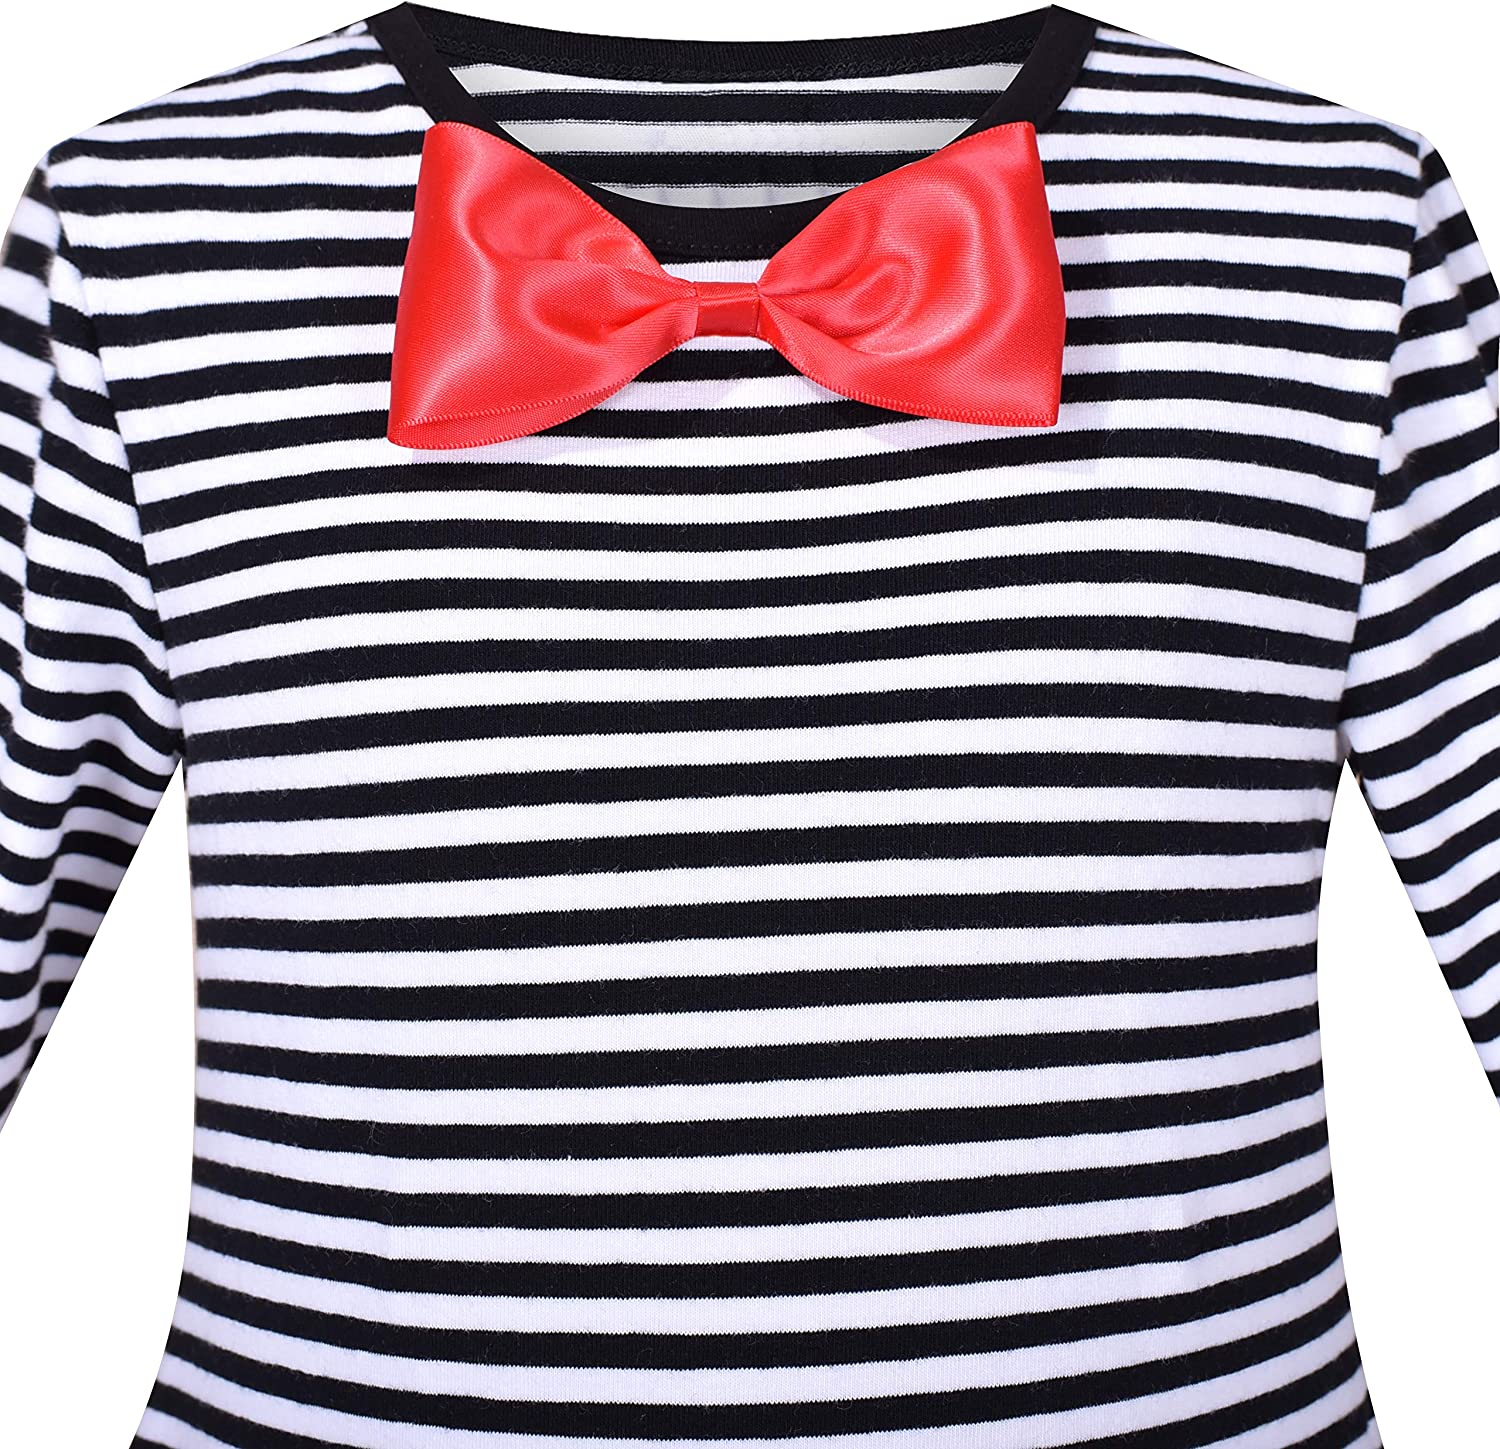 Red Black Christmas Xmas Party Snowman Dress Age 7 8 9 10 11 12 13 Year A104